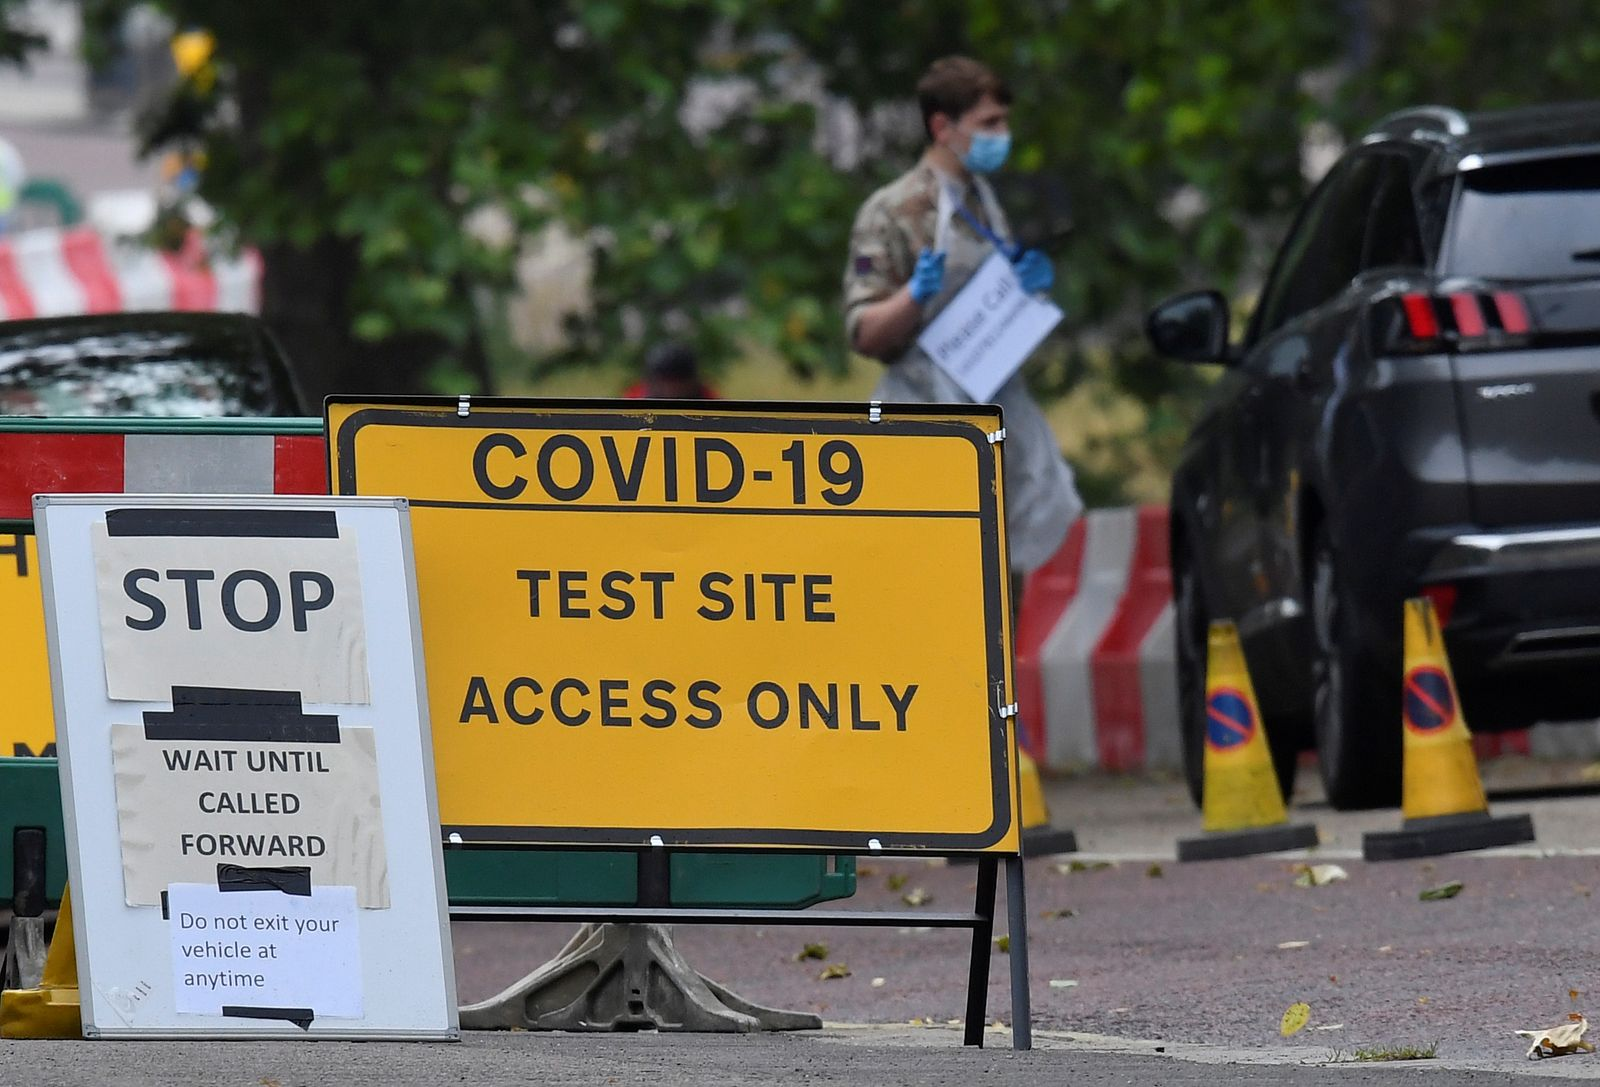 Outbreak of the coronavirus disease (COVID-19) in London